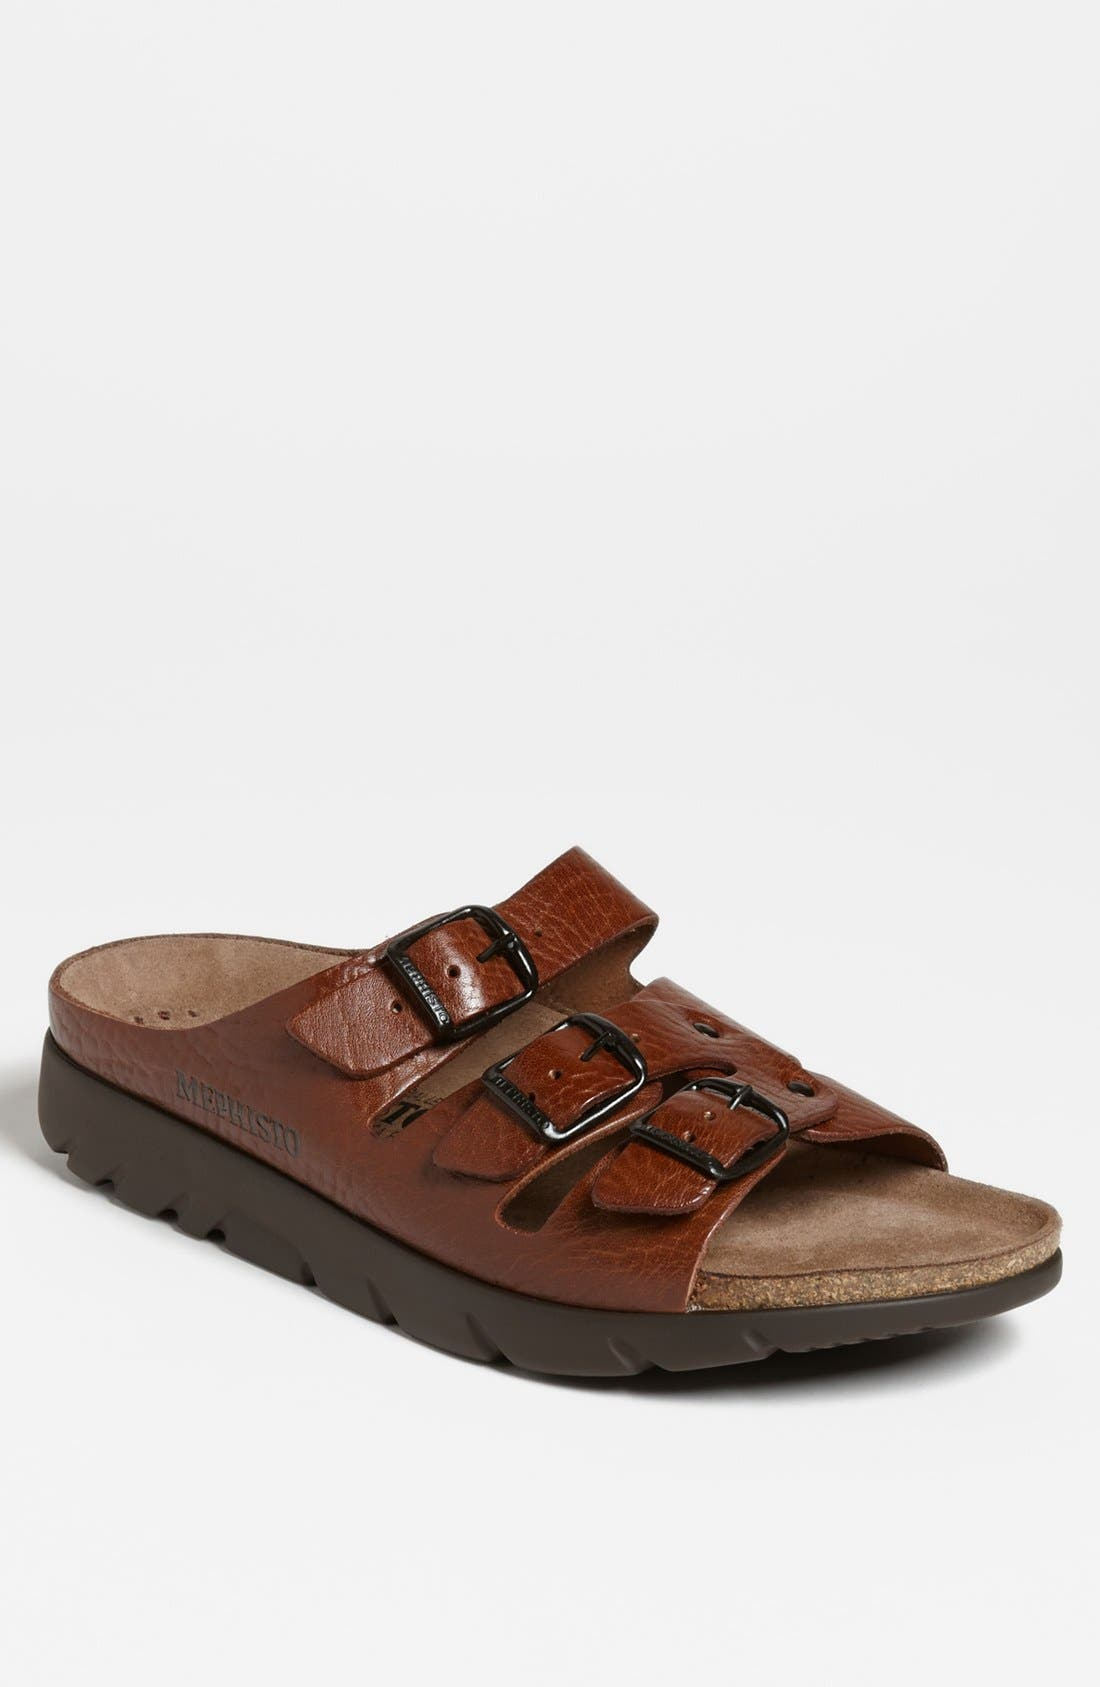 MEPHISTO, 'Zach 3' Sandal, Main thumbnail 1, color, TAN GRAIN